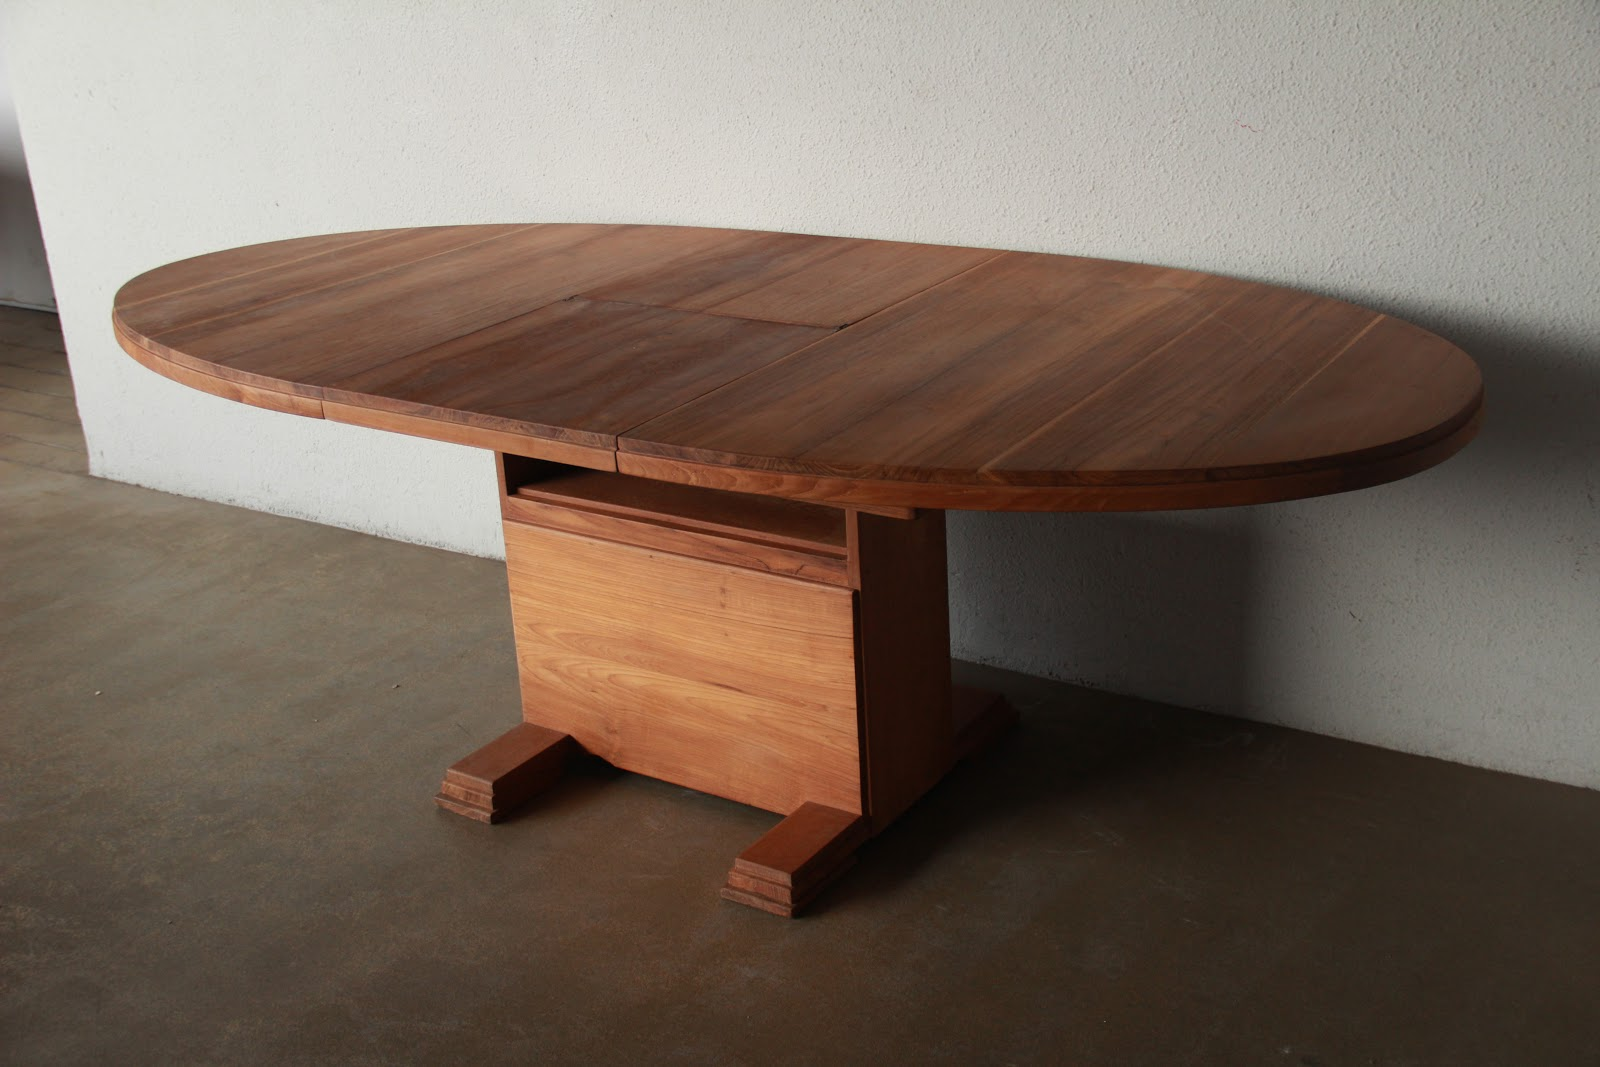 Vintage Extendable Dining Table Discerning For Designs The Dominating Influence Of Midcentury